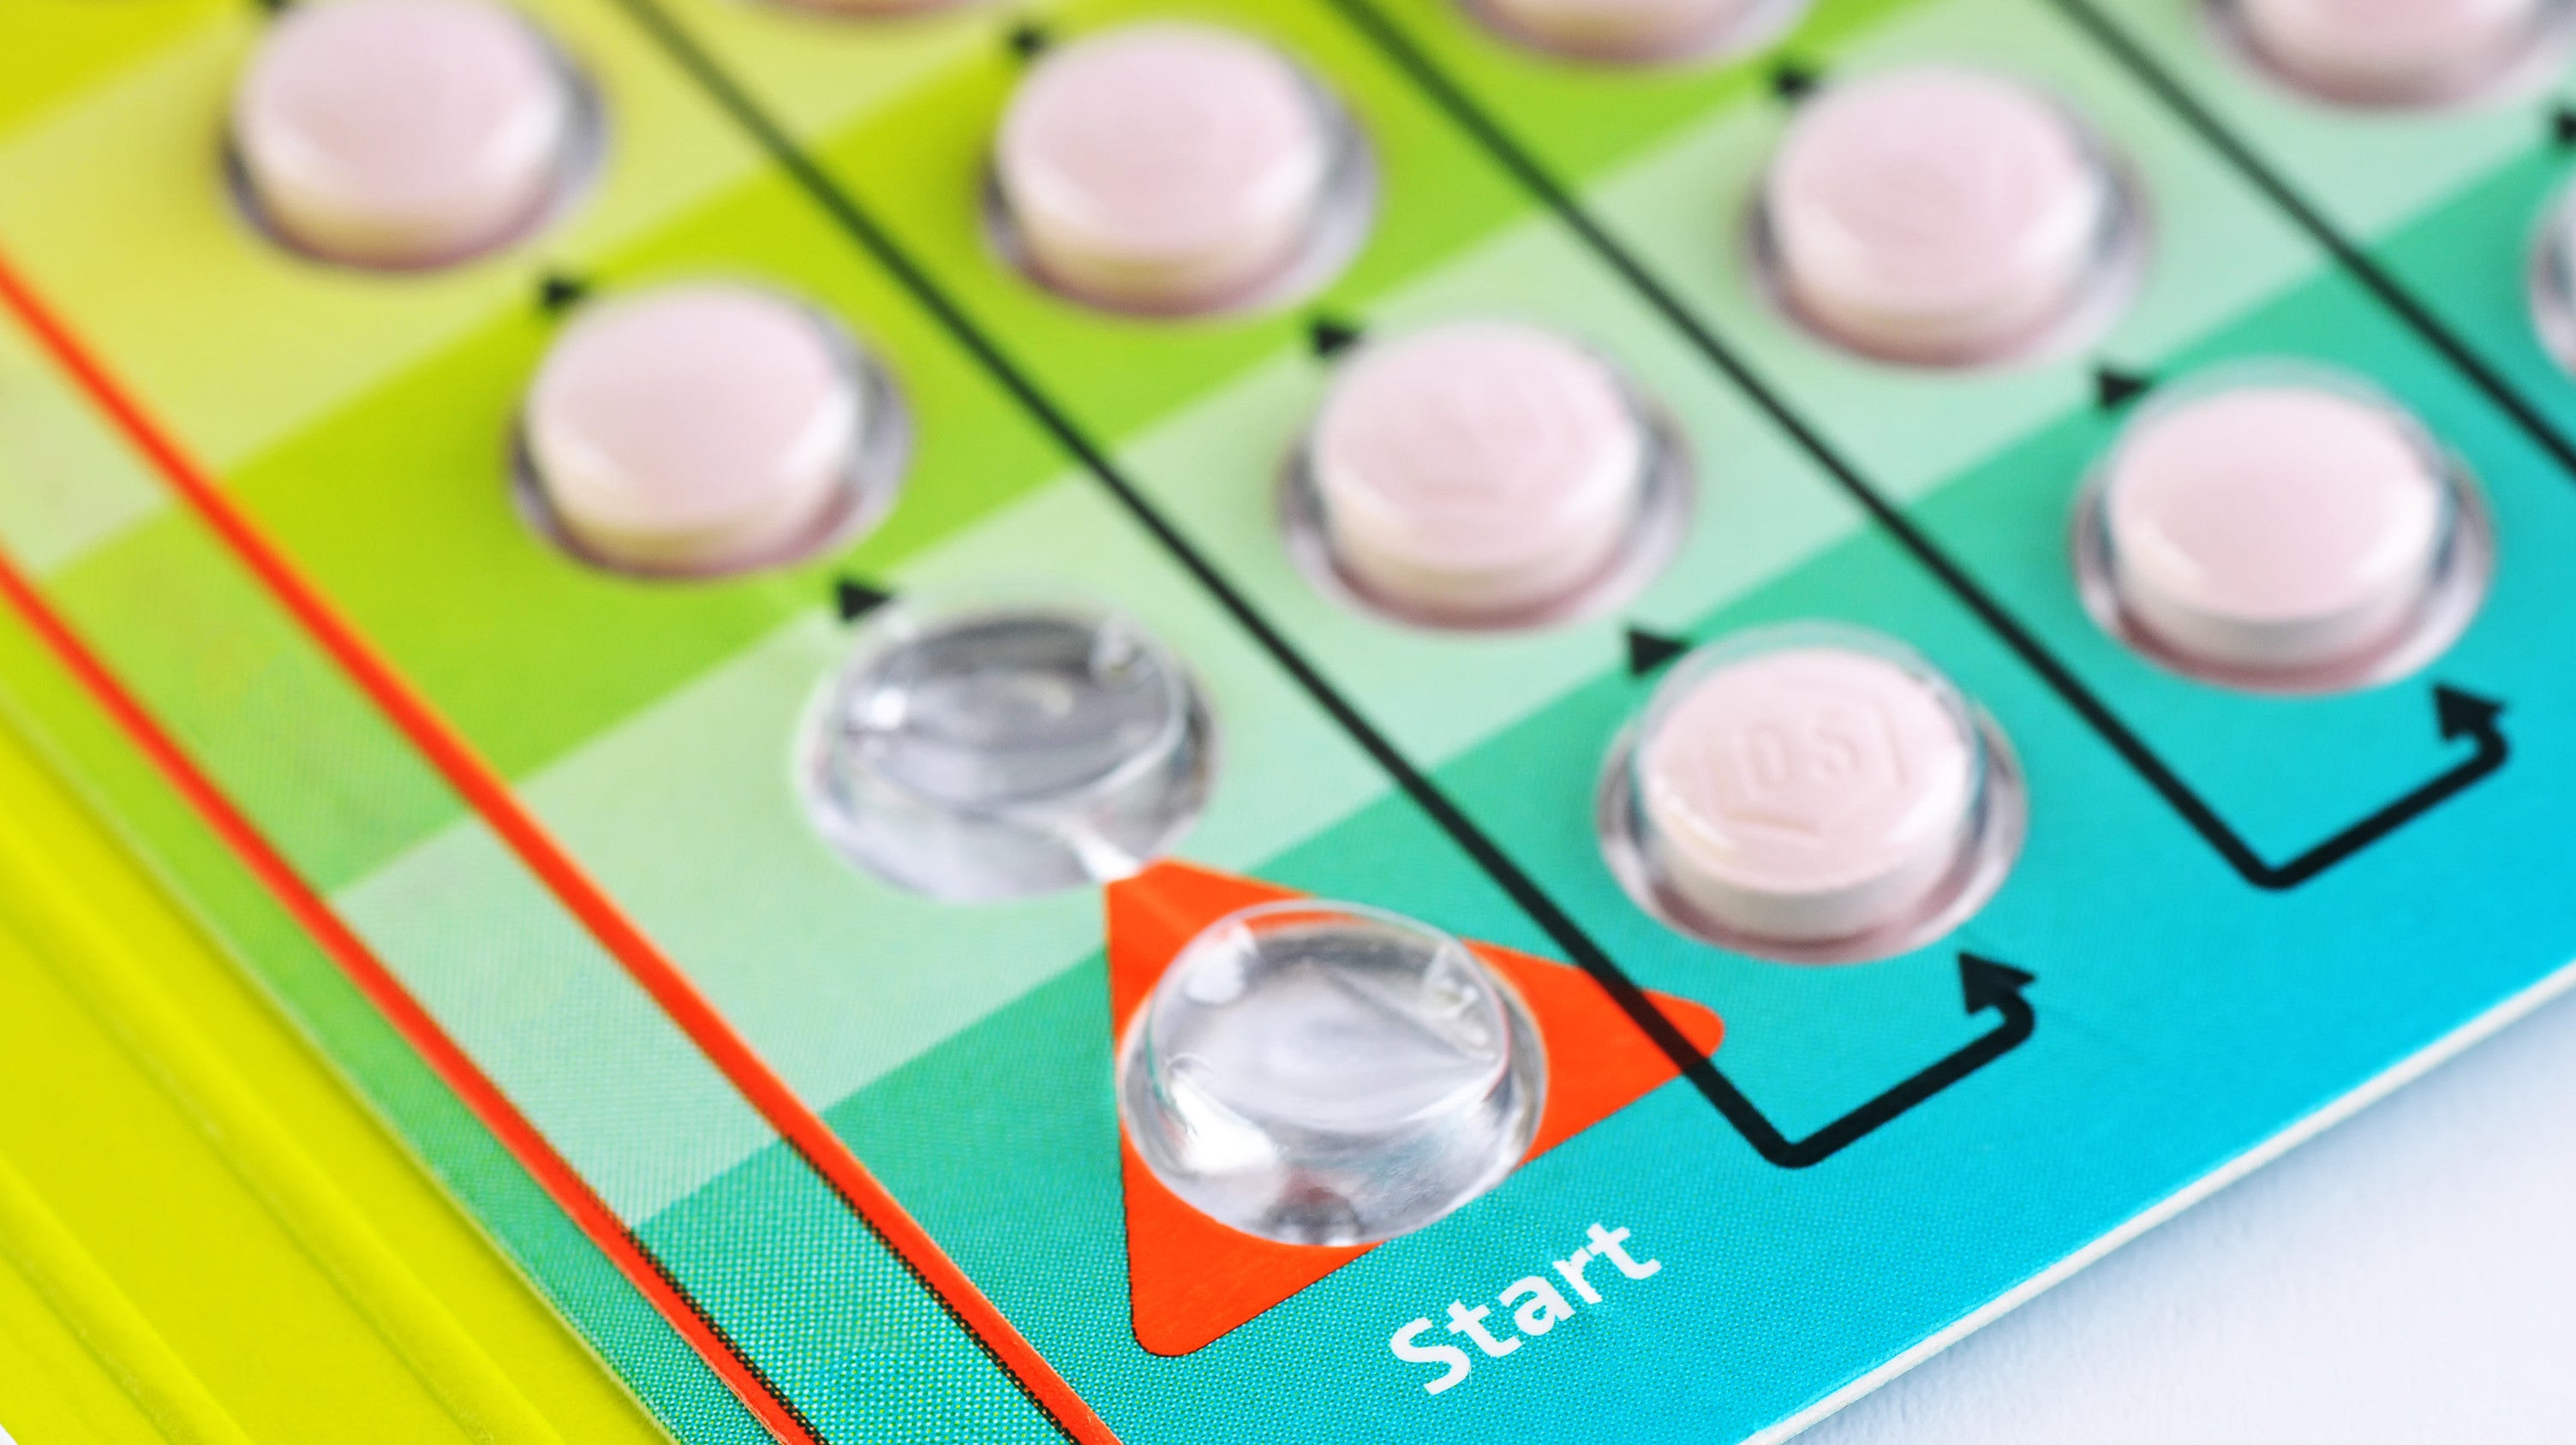 Can You Save Your Birth Control Pills For After Quarantine?